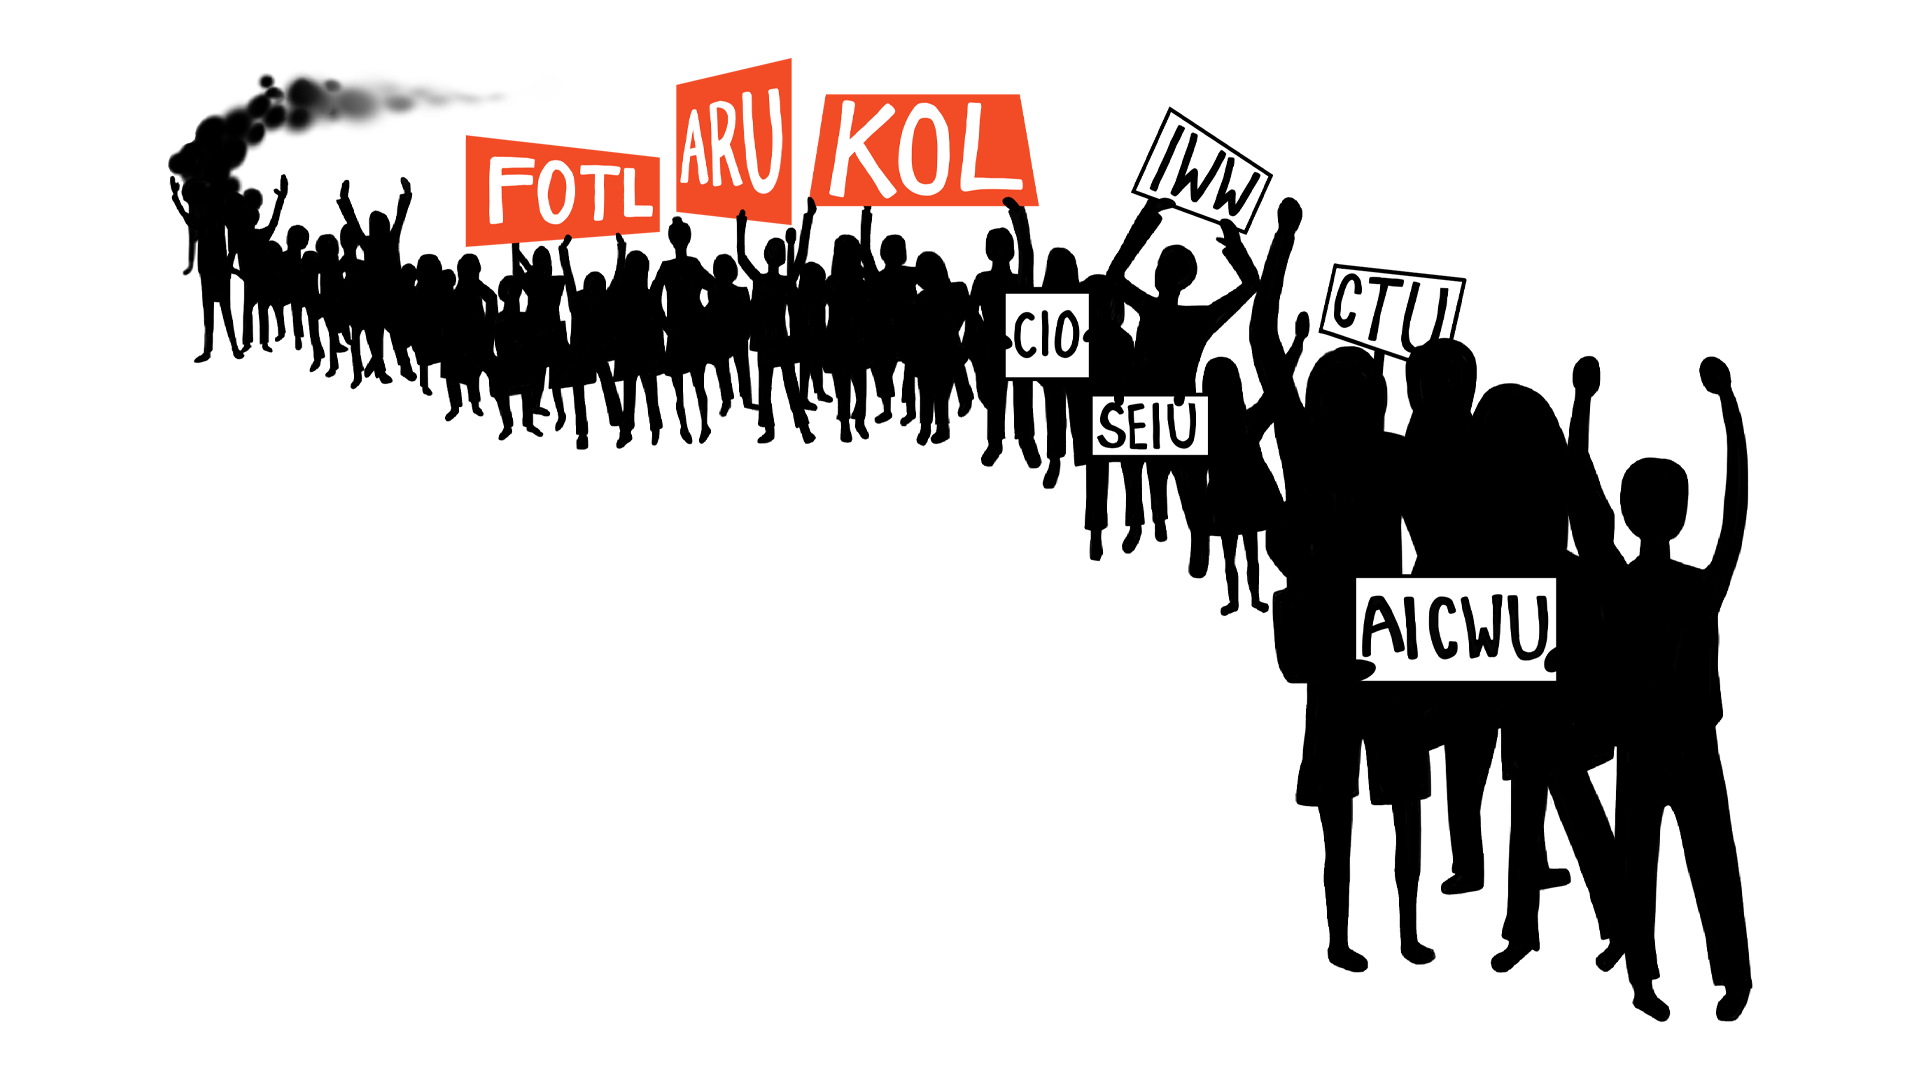 Parade of silhouettes holding signs with union acronyms, from back to front: FOTL, ARU, KOL, IWW, CIO, SEIU, CTU, and AICWU.